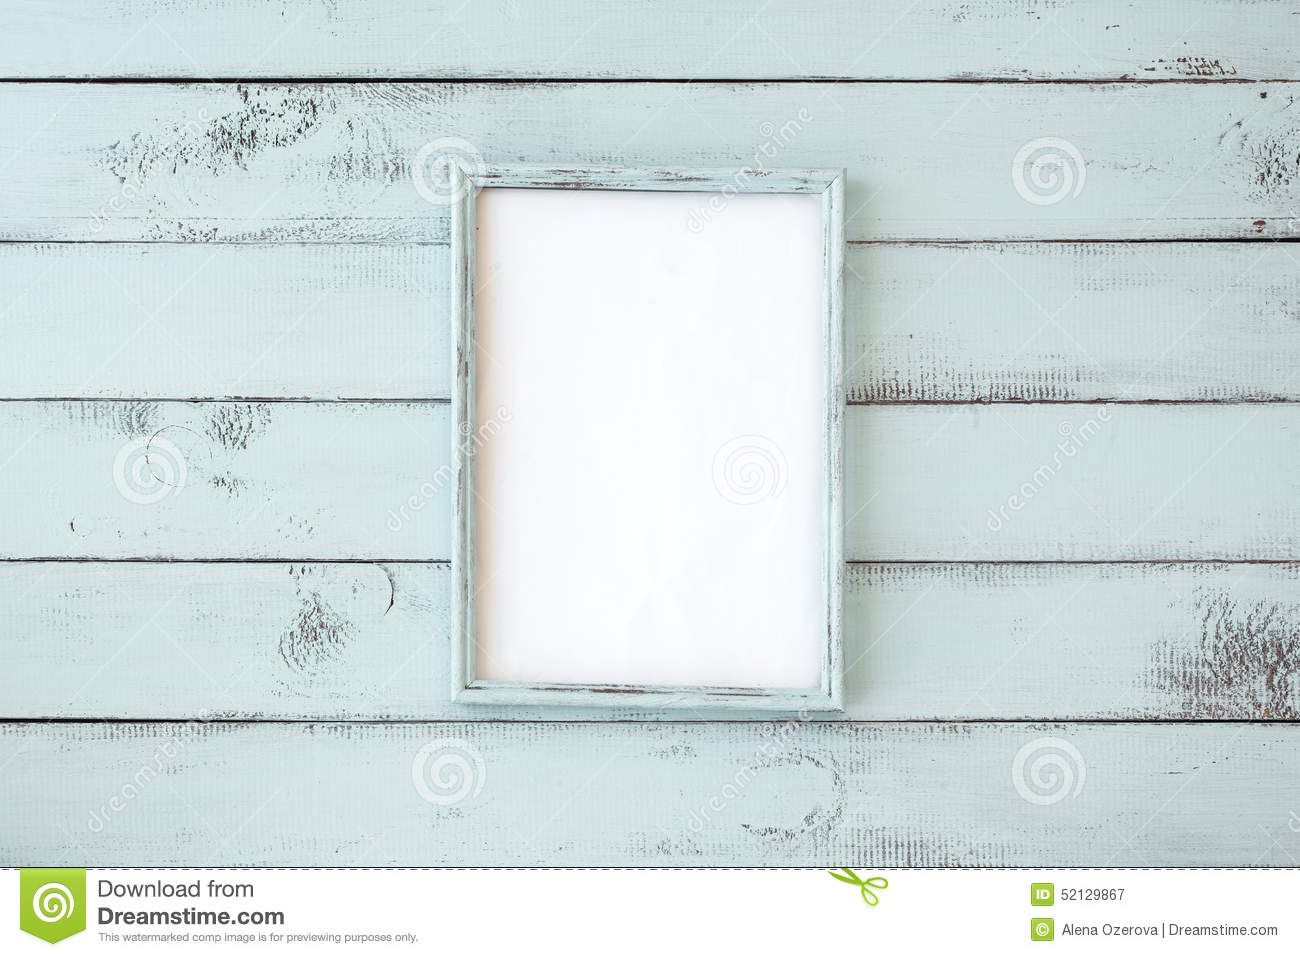 Shabby chic photo frame stock image. Image of copy, frames - 52129867